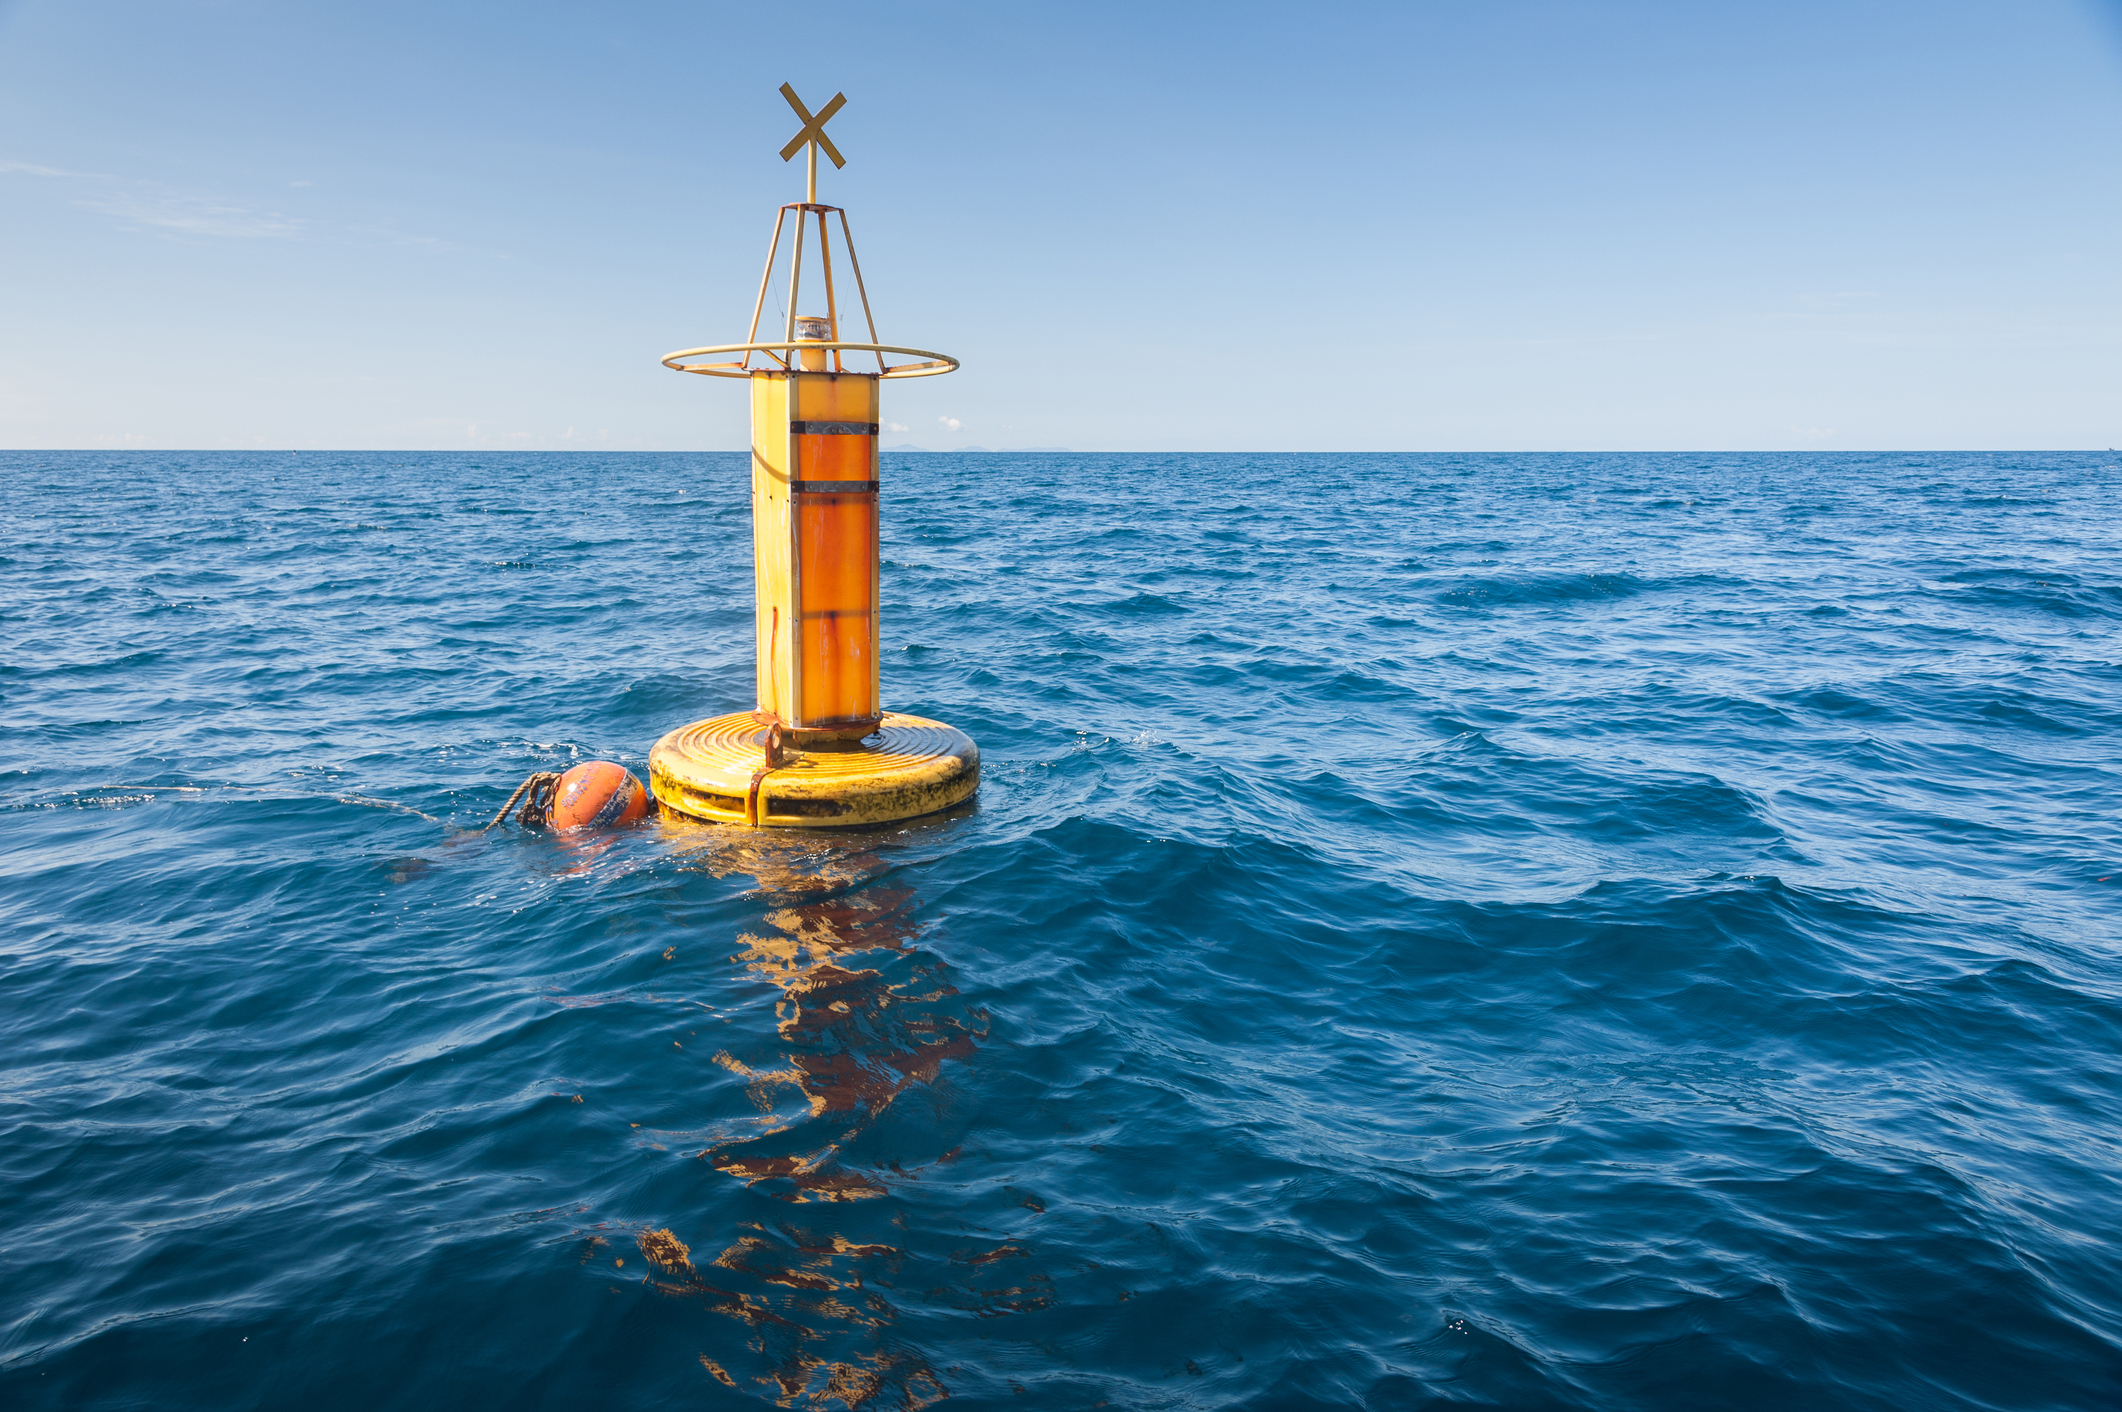 Need a buoy with the new Summer season of the Internet?